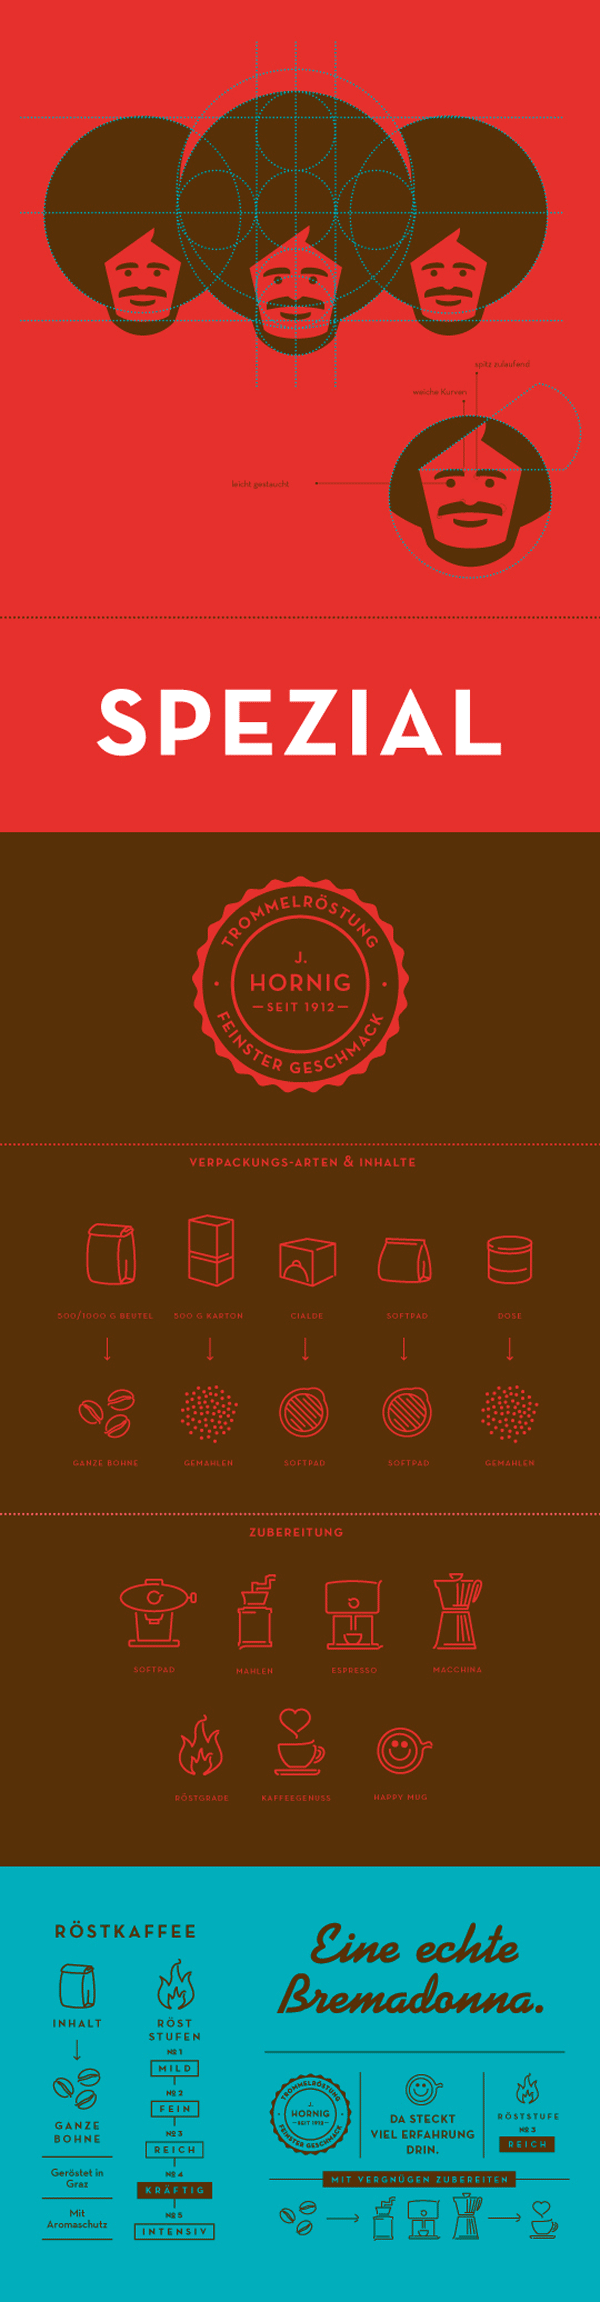 J. Hornig – Coffee Branding and Packaging by Moodley Brand Identity